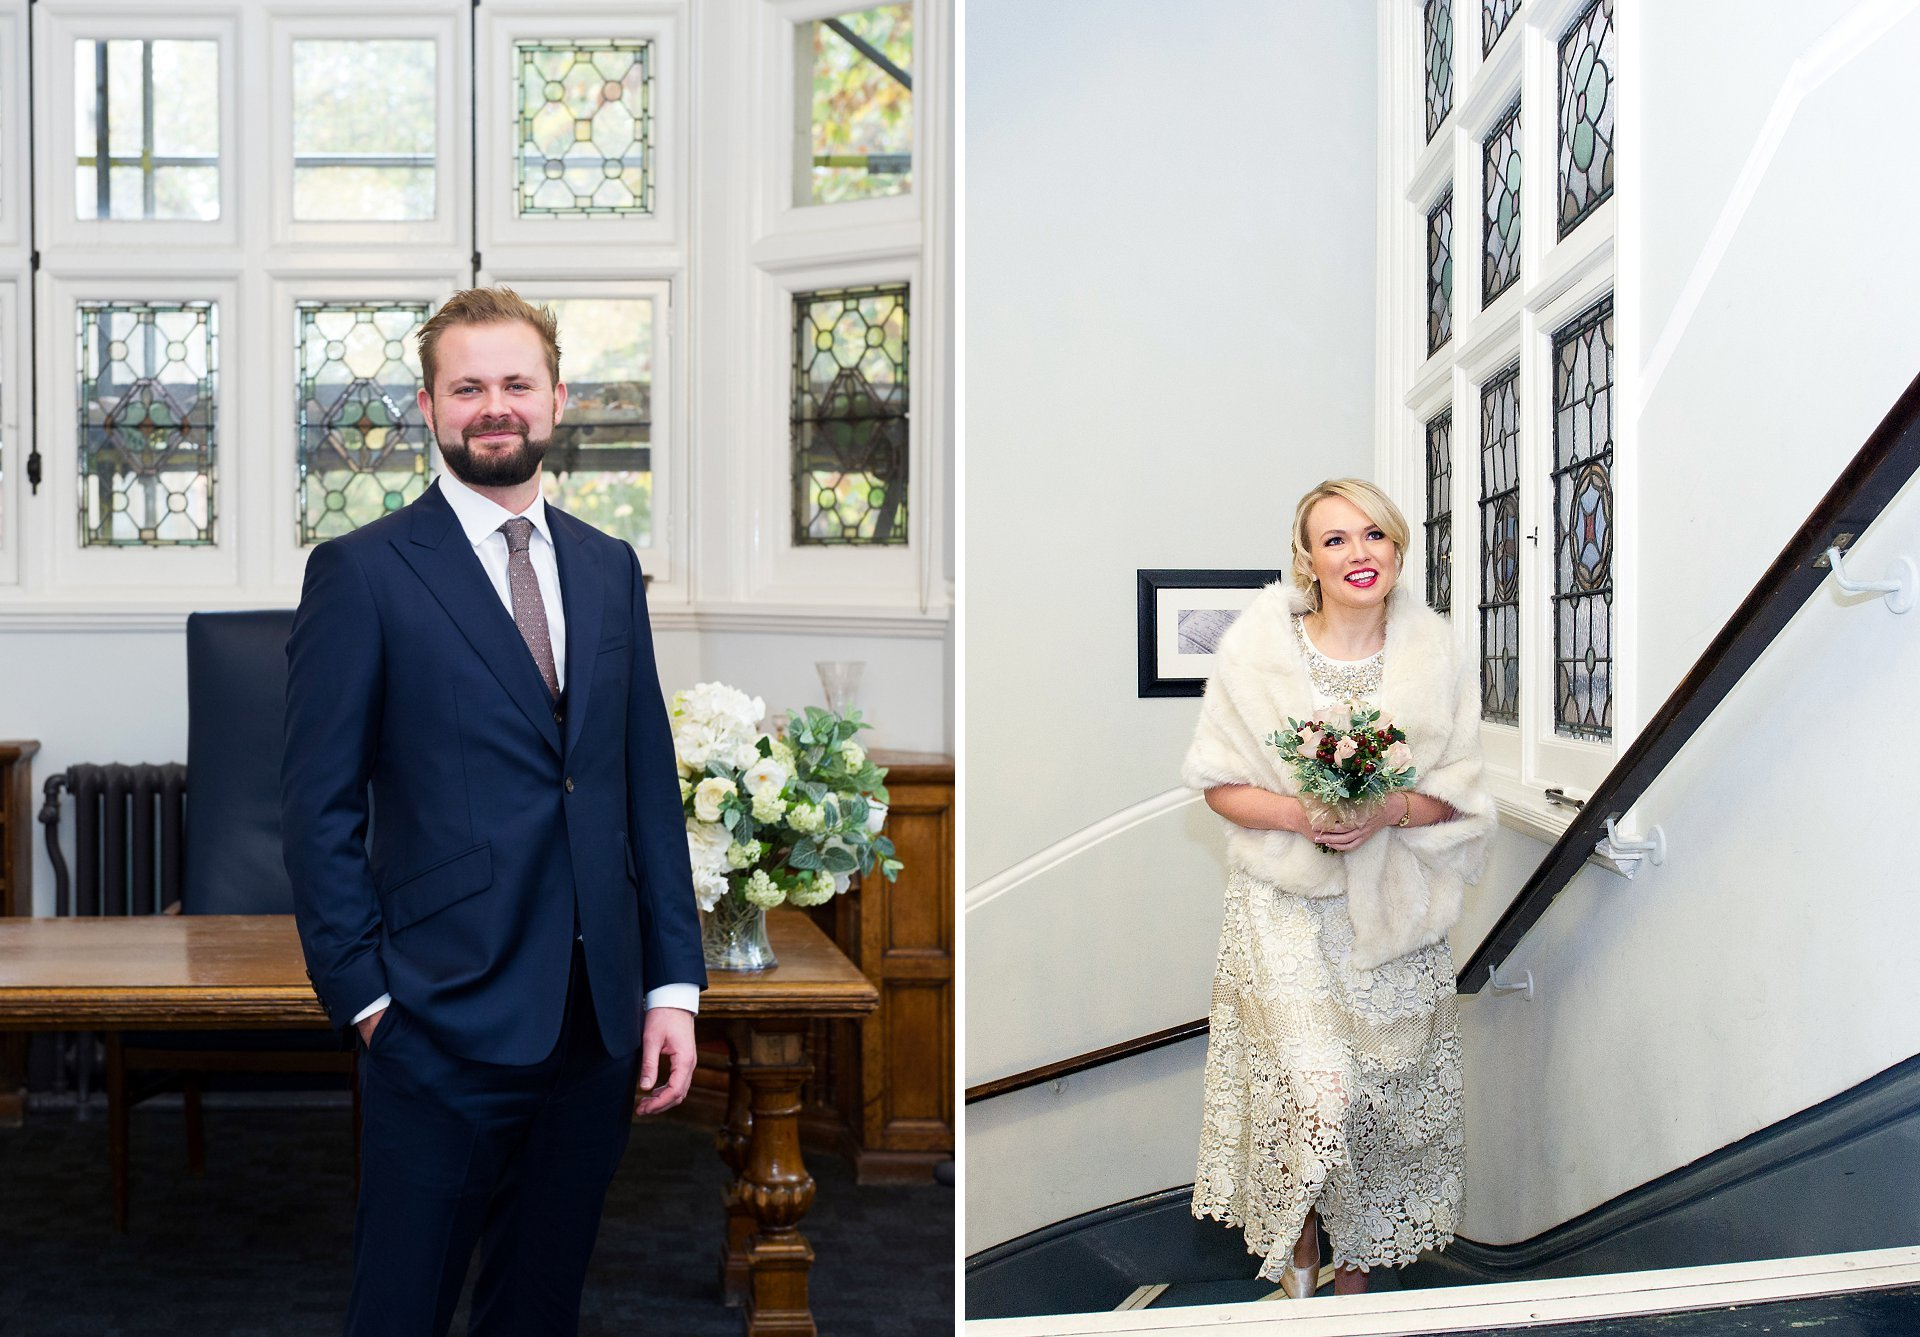 a groom in navy and a bride in vintage style wedding dress and fur stole arrive at mayfair library in westminster for their civil ceremony